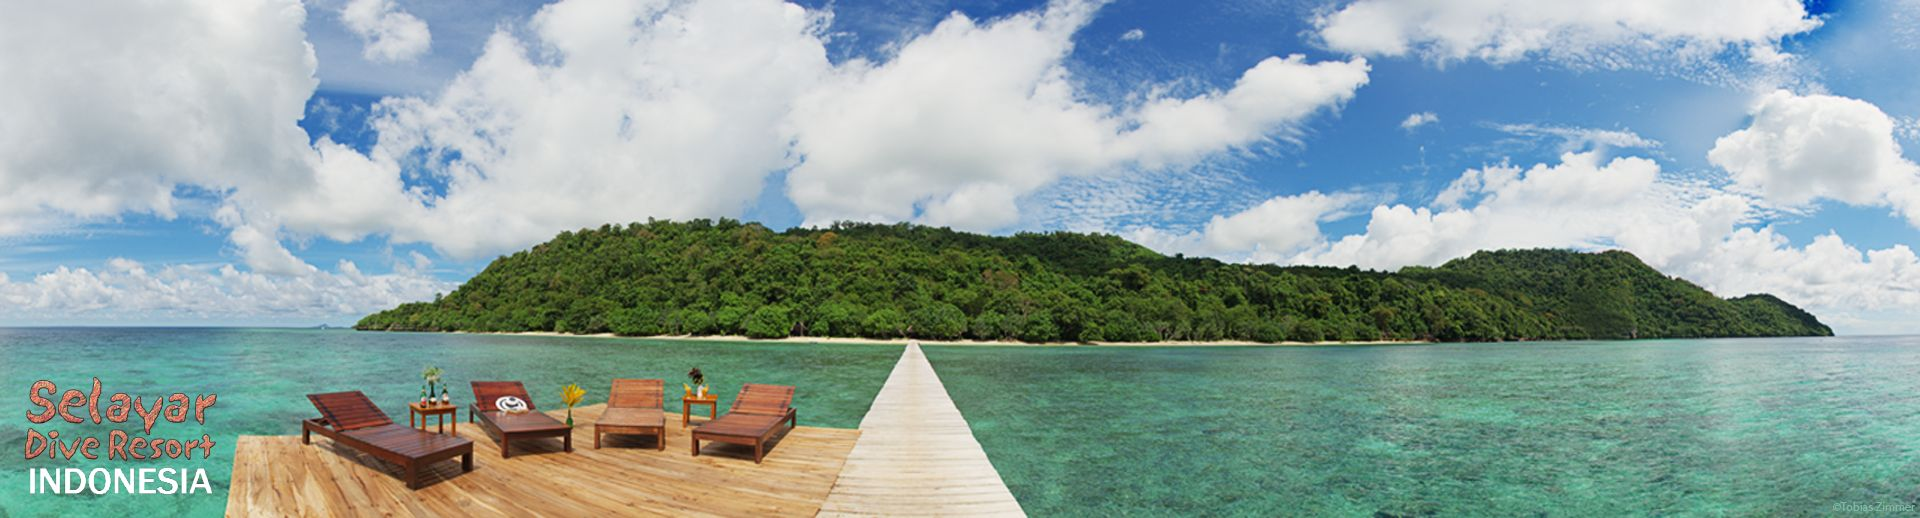 Beach Resort Indonesia south Sulawesi Selayar Dive Resort